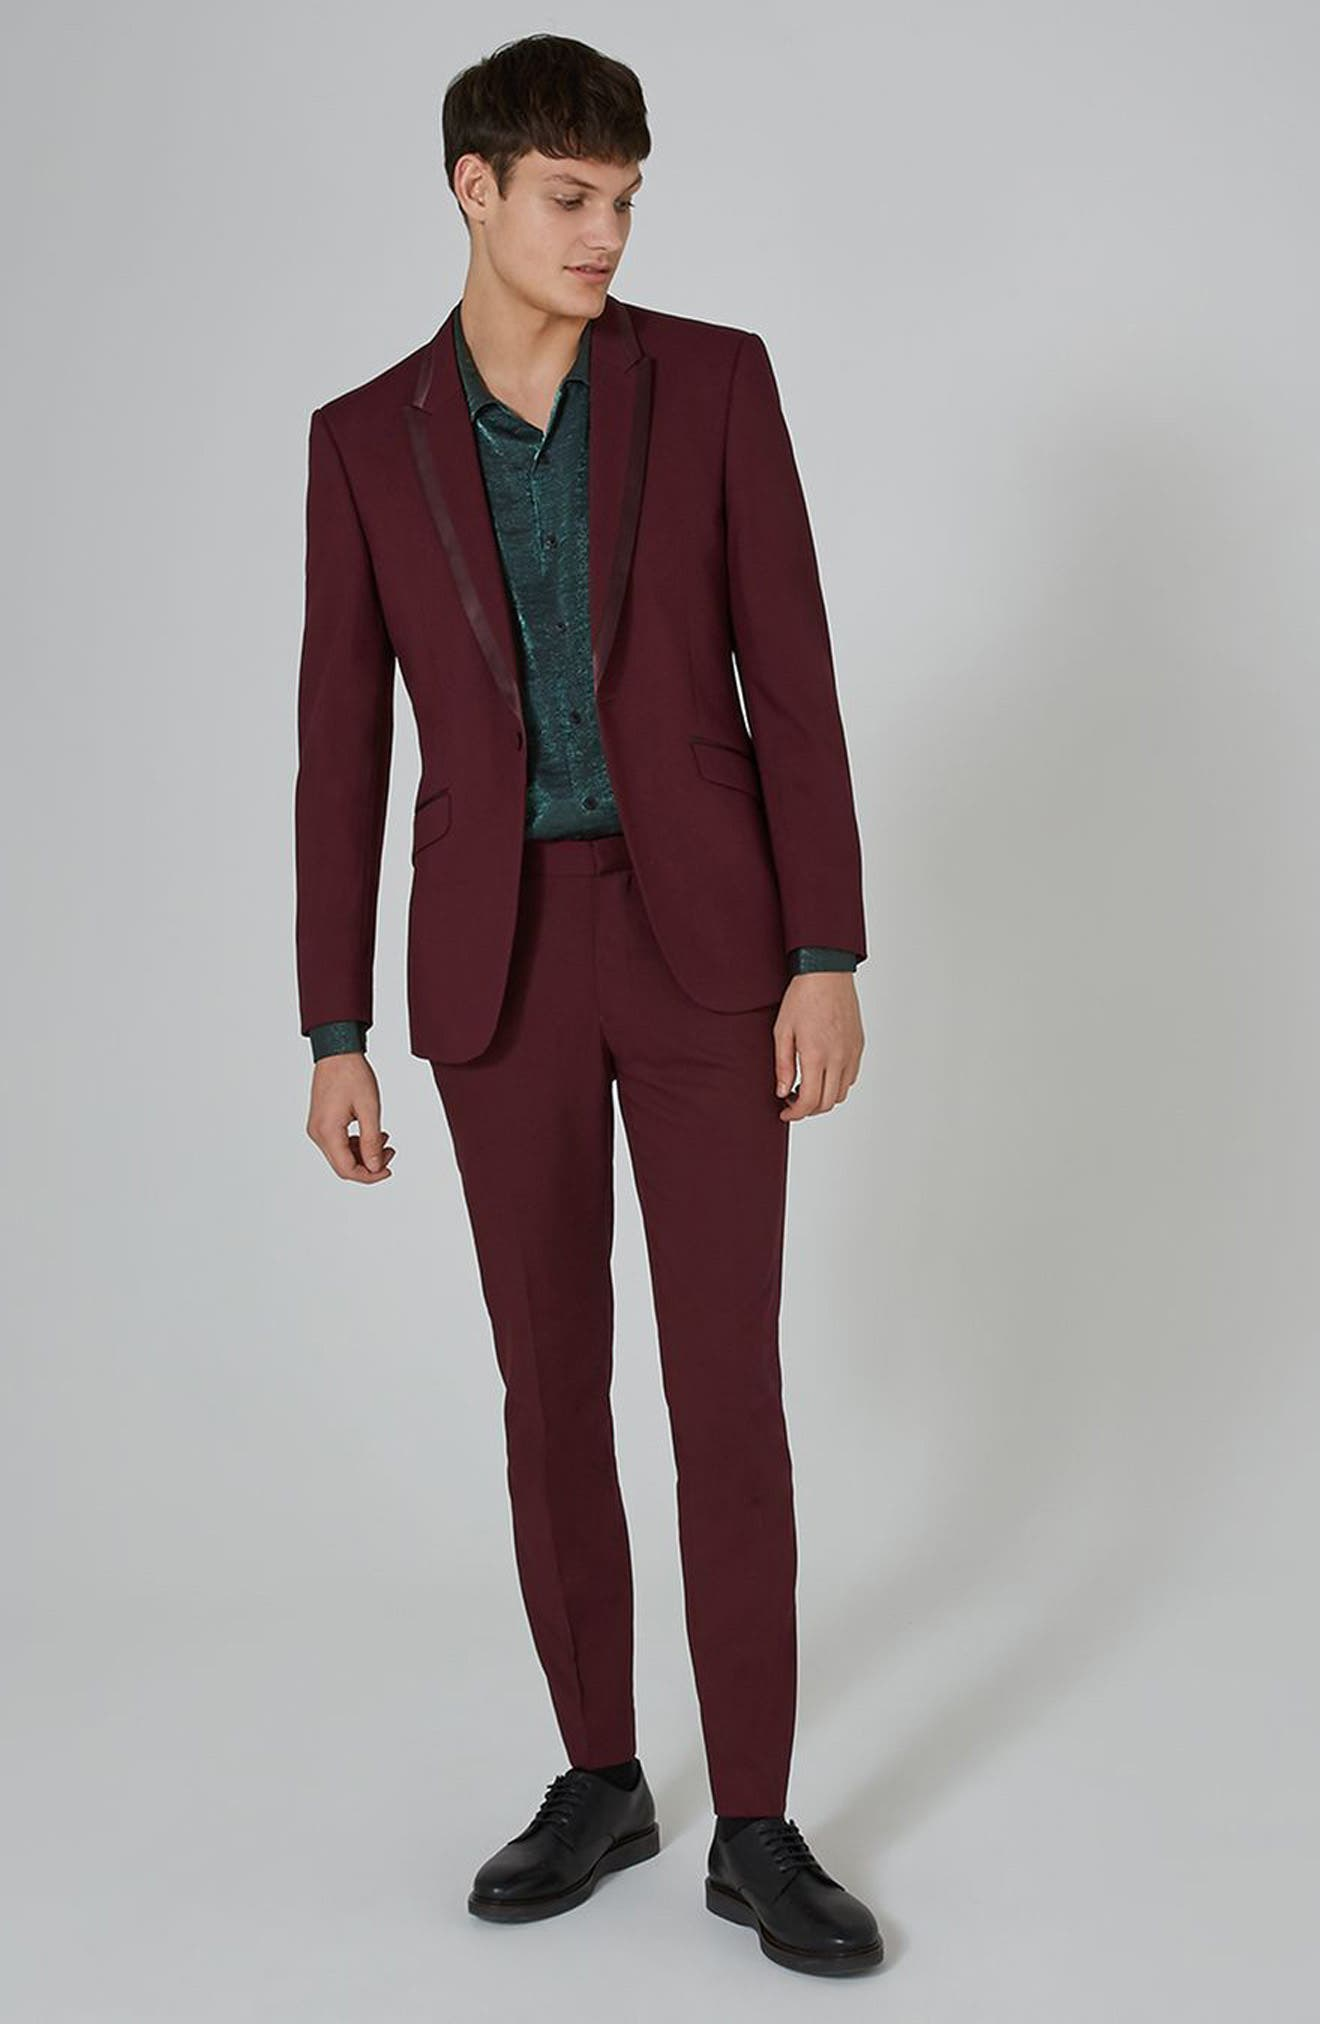 Skinny Fit Burgundy Tuxedo Jacket,                             Alternate thumbnail 5, color,